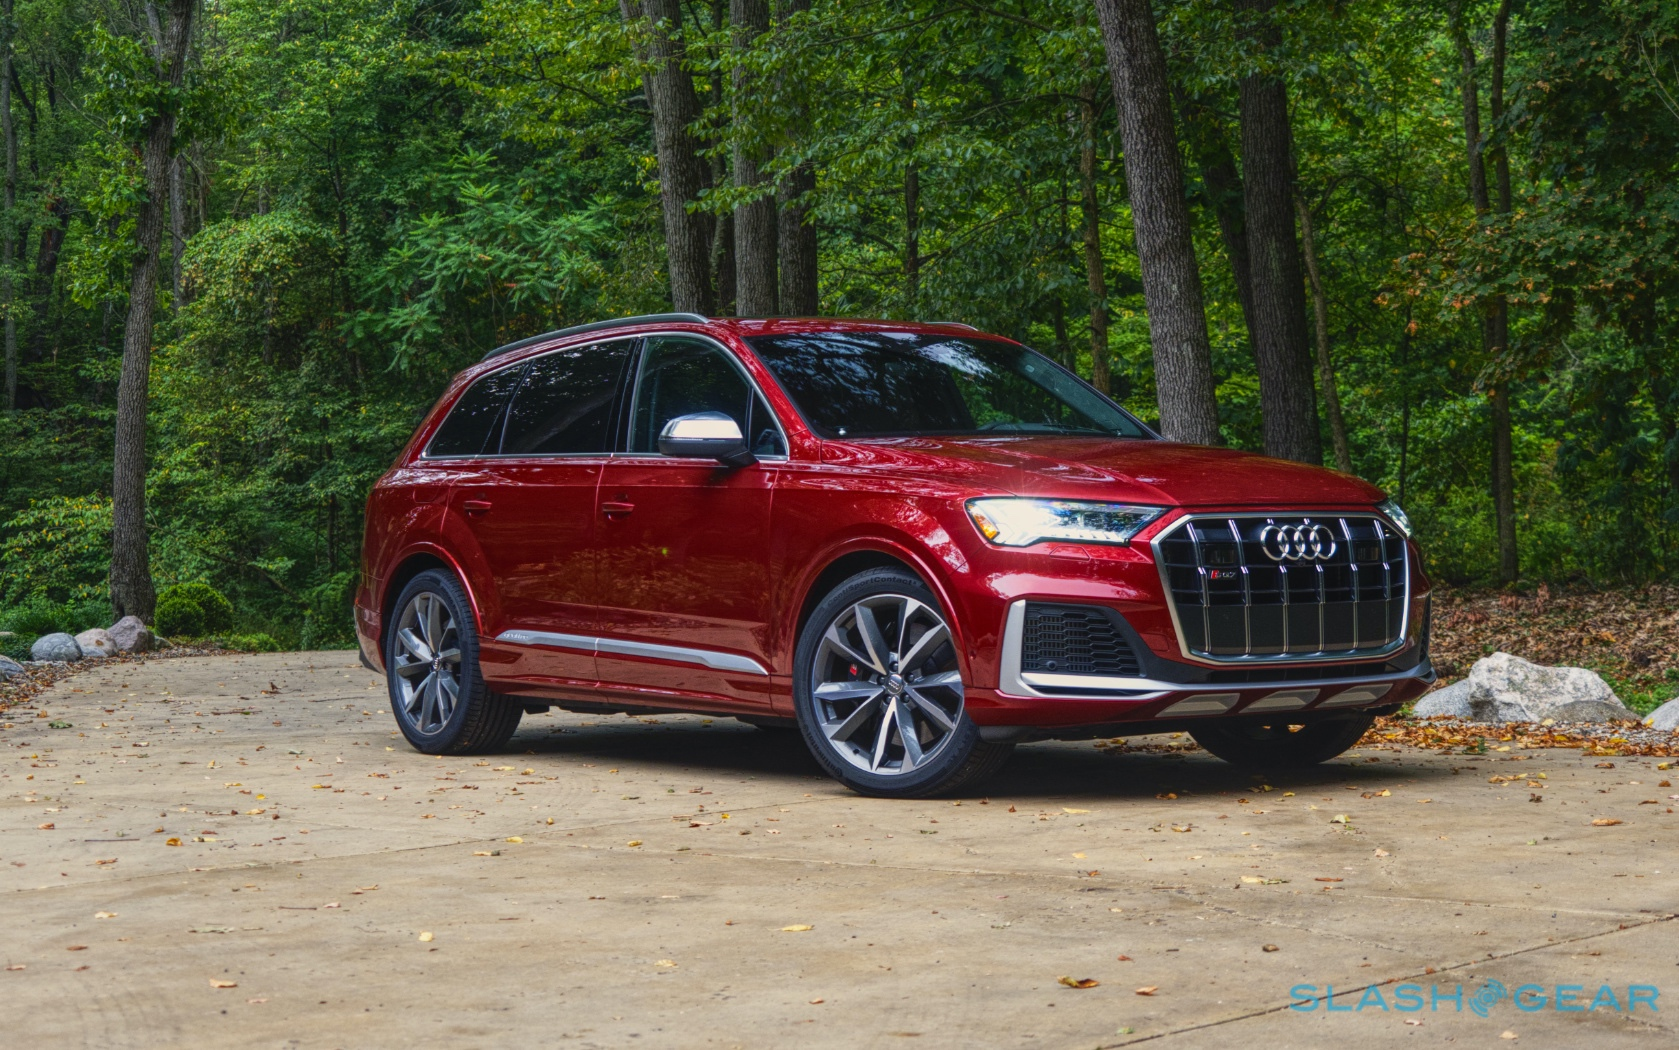 2020 Audi Sq7 Gallery Slashgear